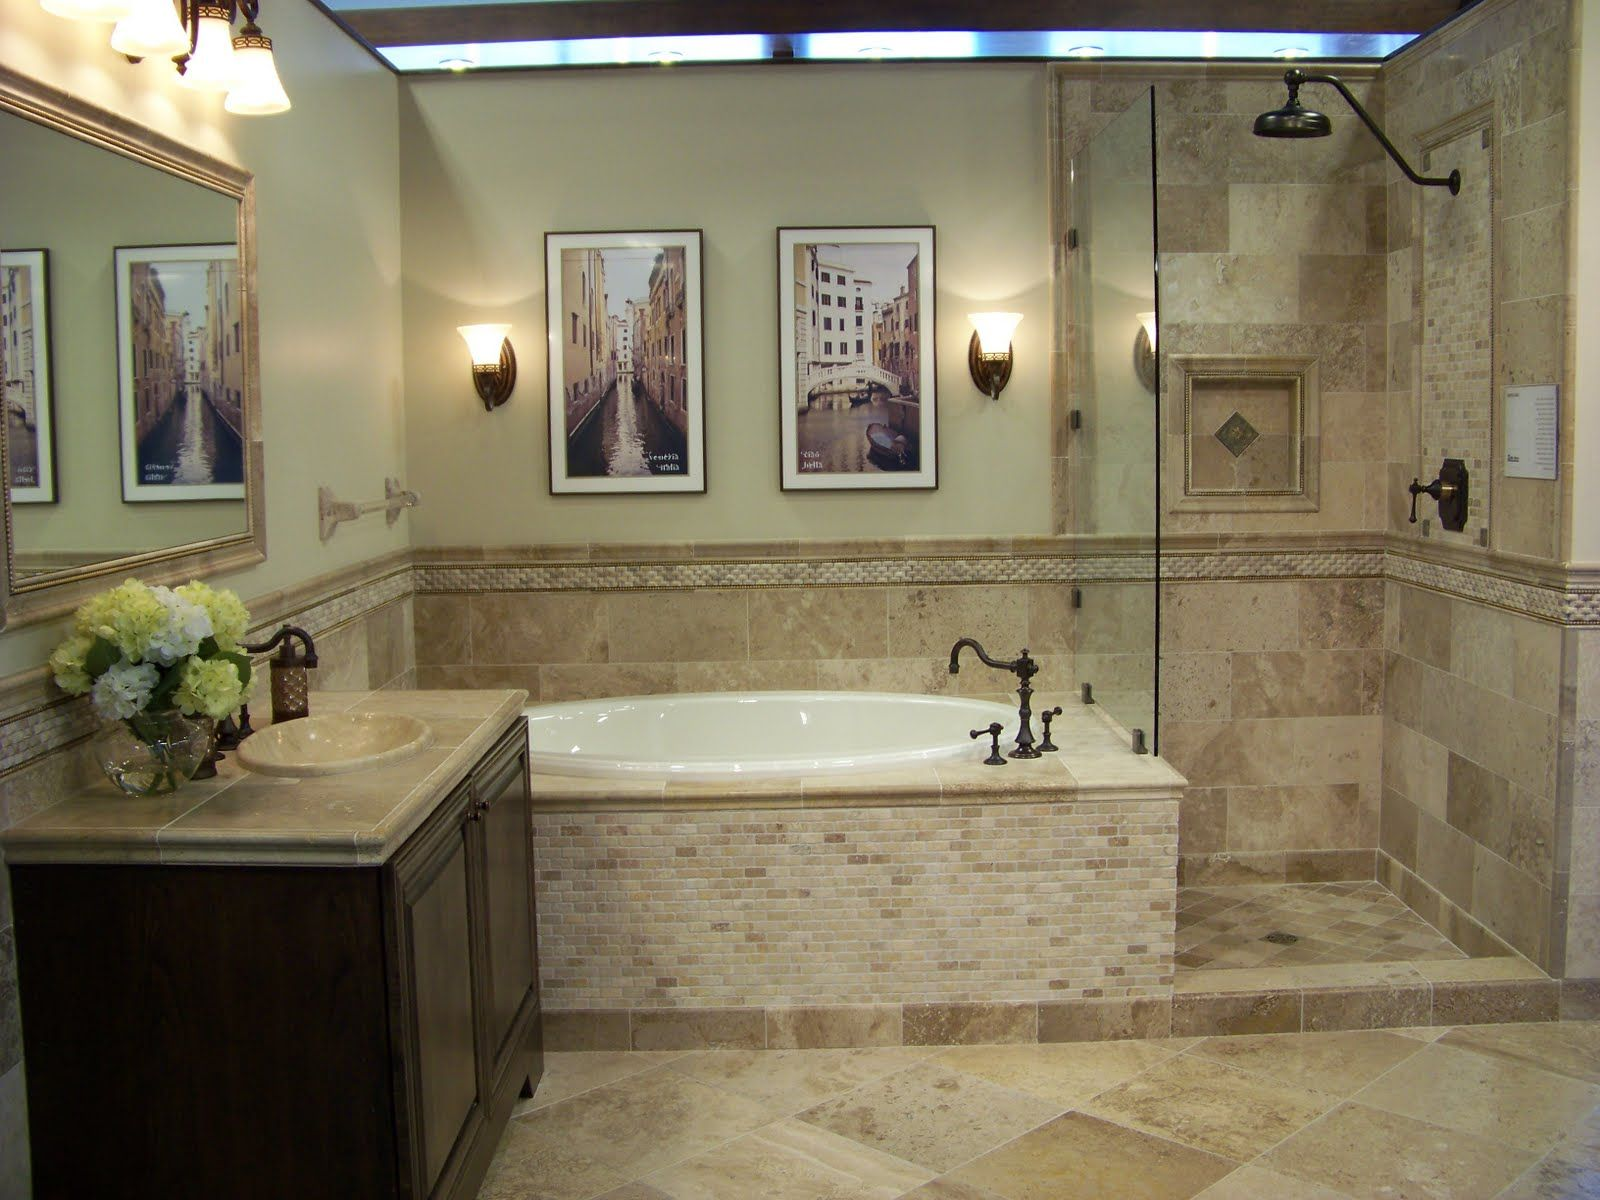 Travertine Bathroom Floor Tile Designs | mixture of travertine tiles gives  this bathroom an earthy natural